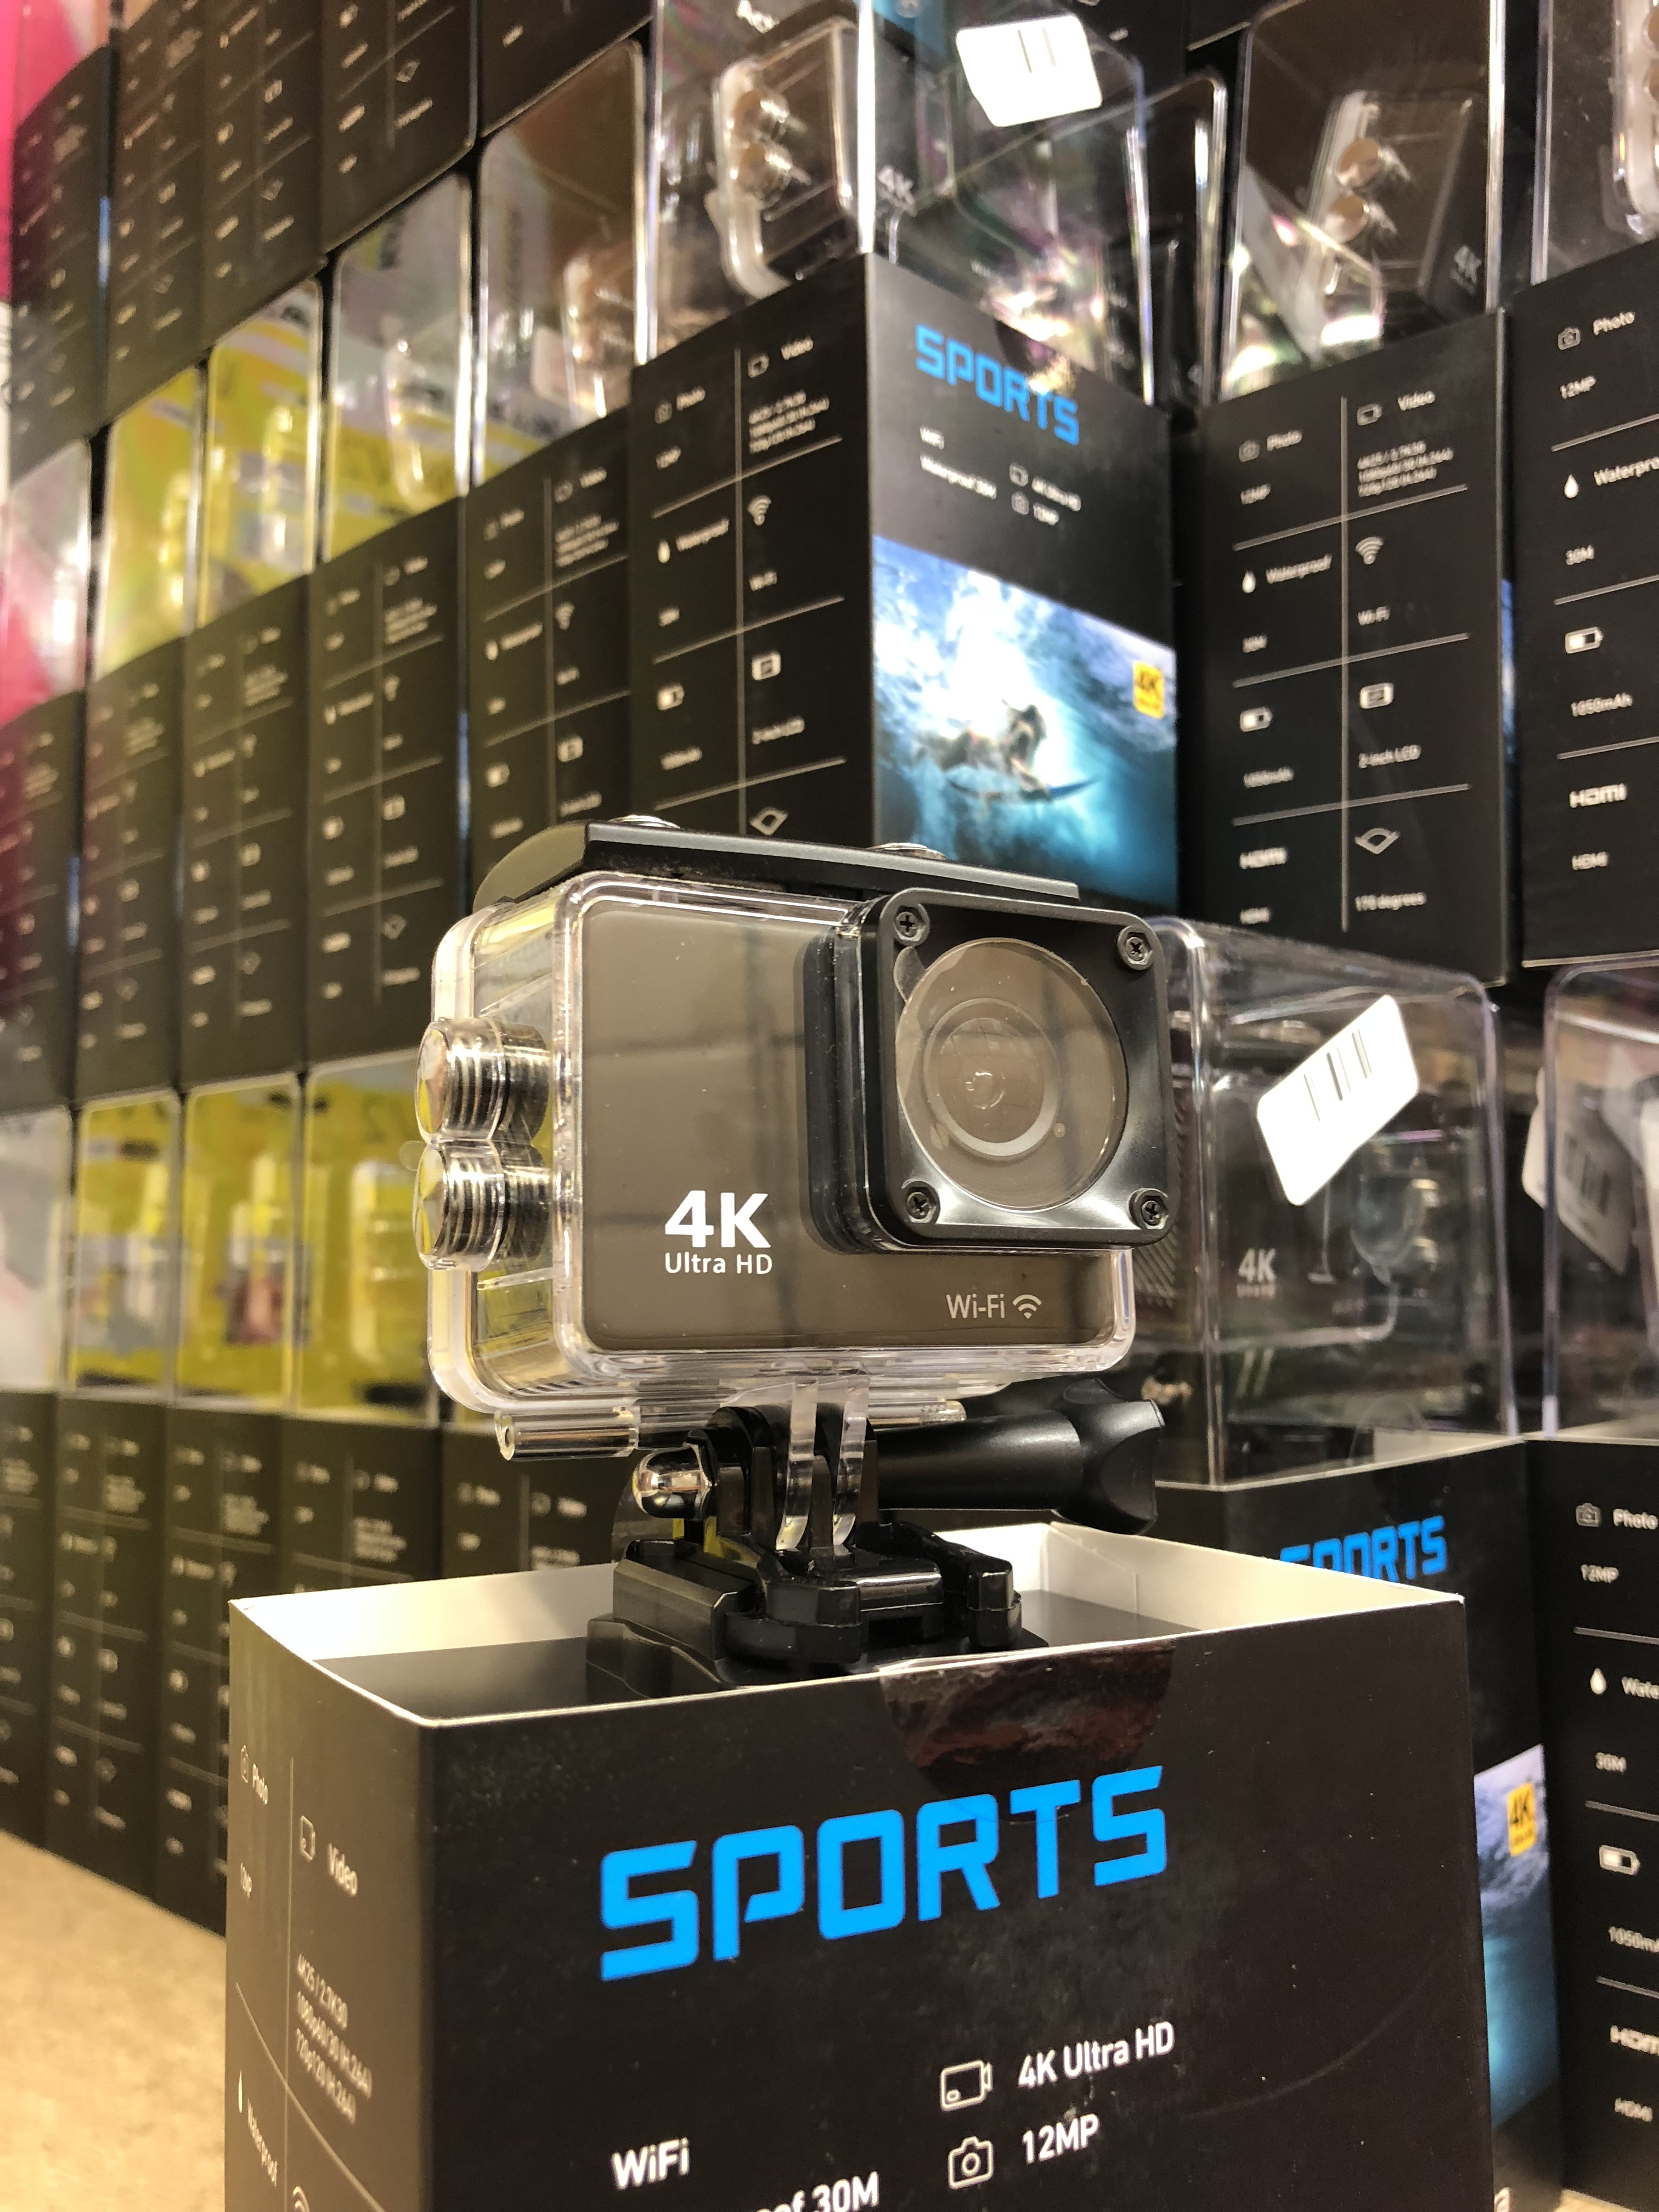 Lot 15960 - Brand New Full Ultra HD 4K Waterproof WiFi Action Camera With Audio - Box And Accessories - 30m